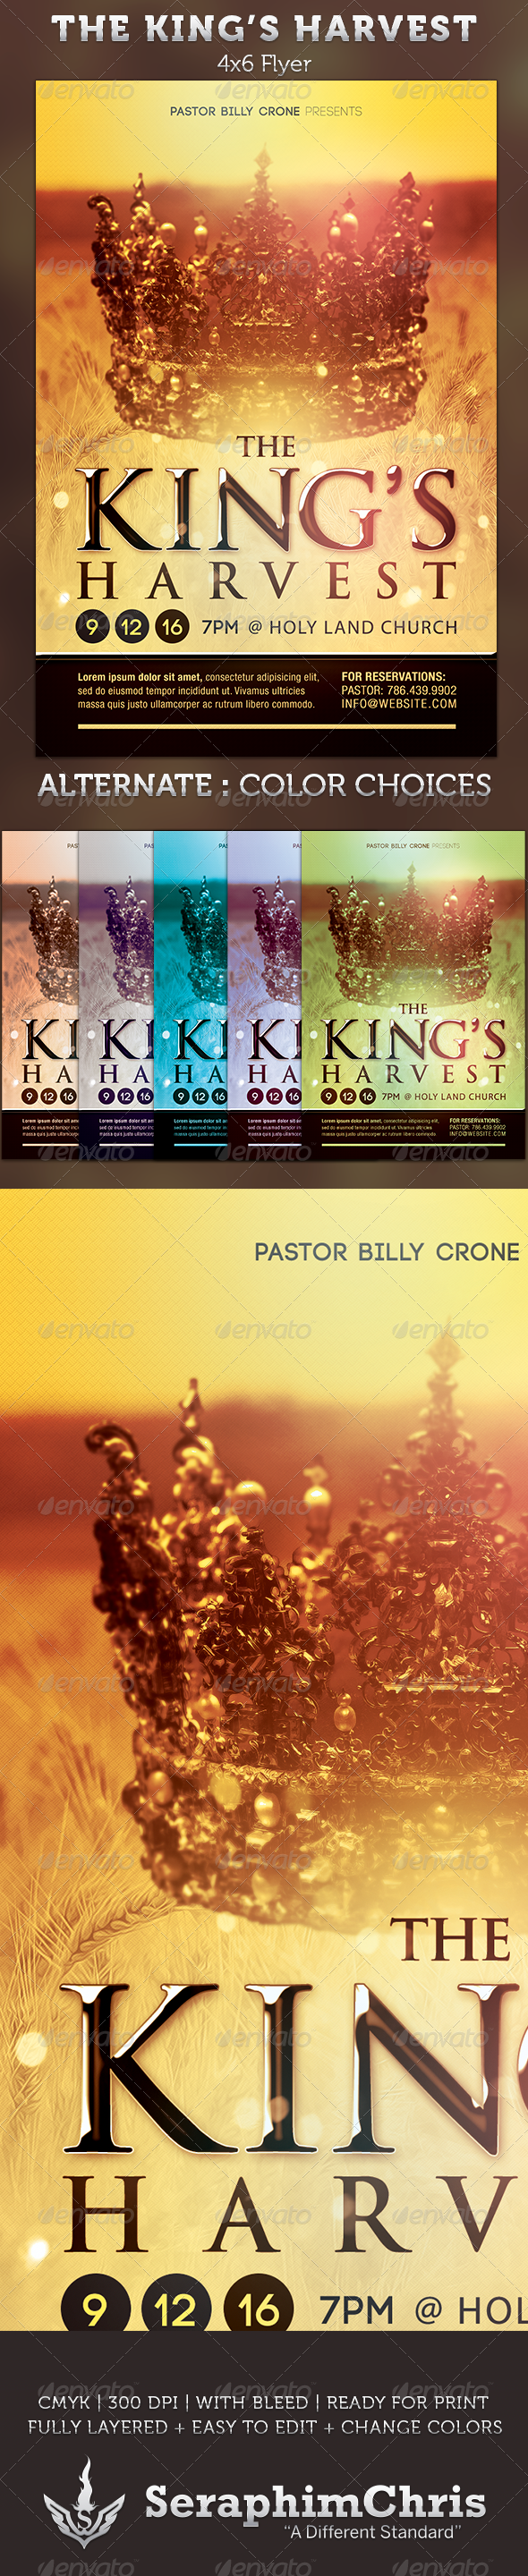 church anniversary banner template anniversary banner church the king s harvest church flyer template